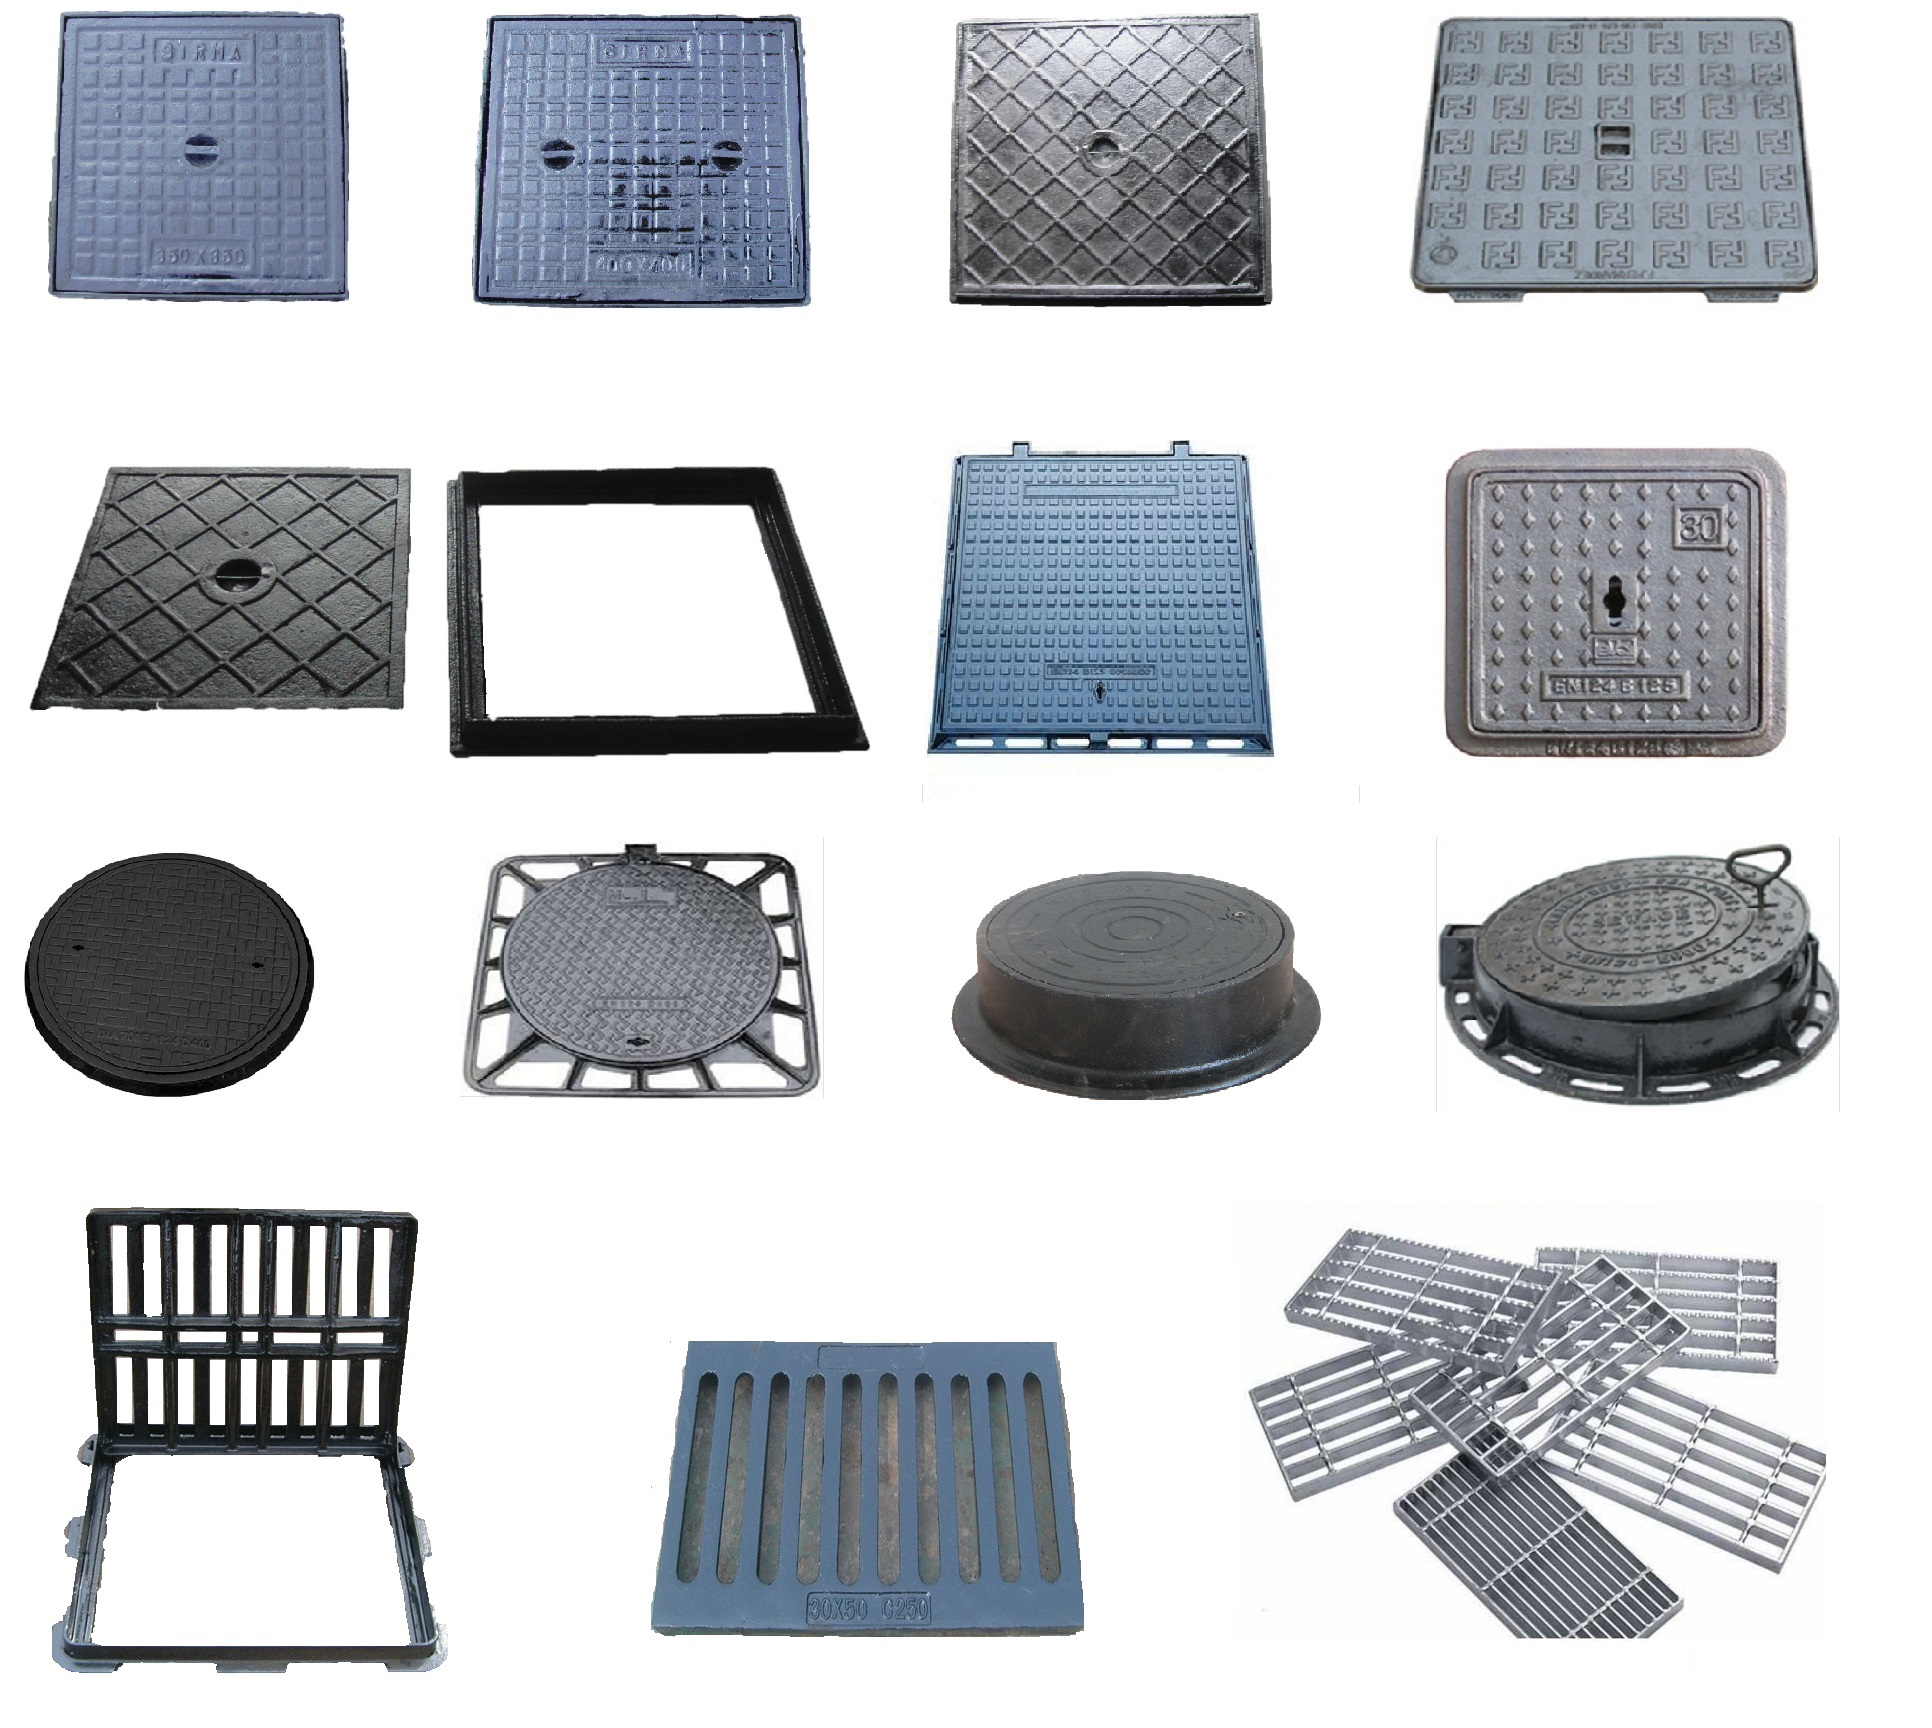 manhole covers & gratings